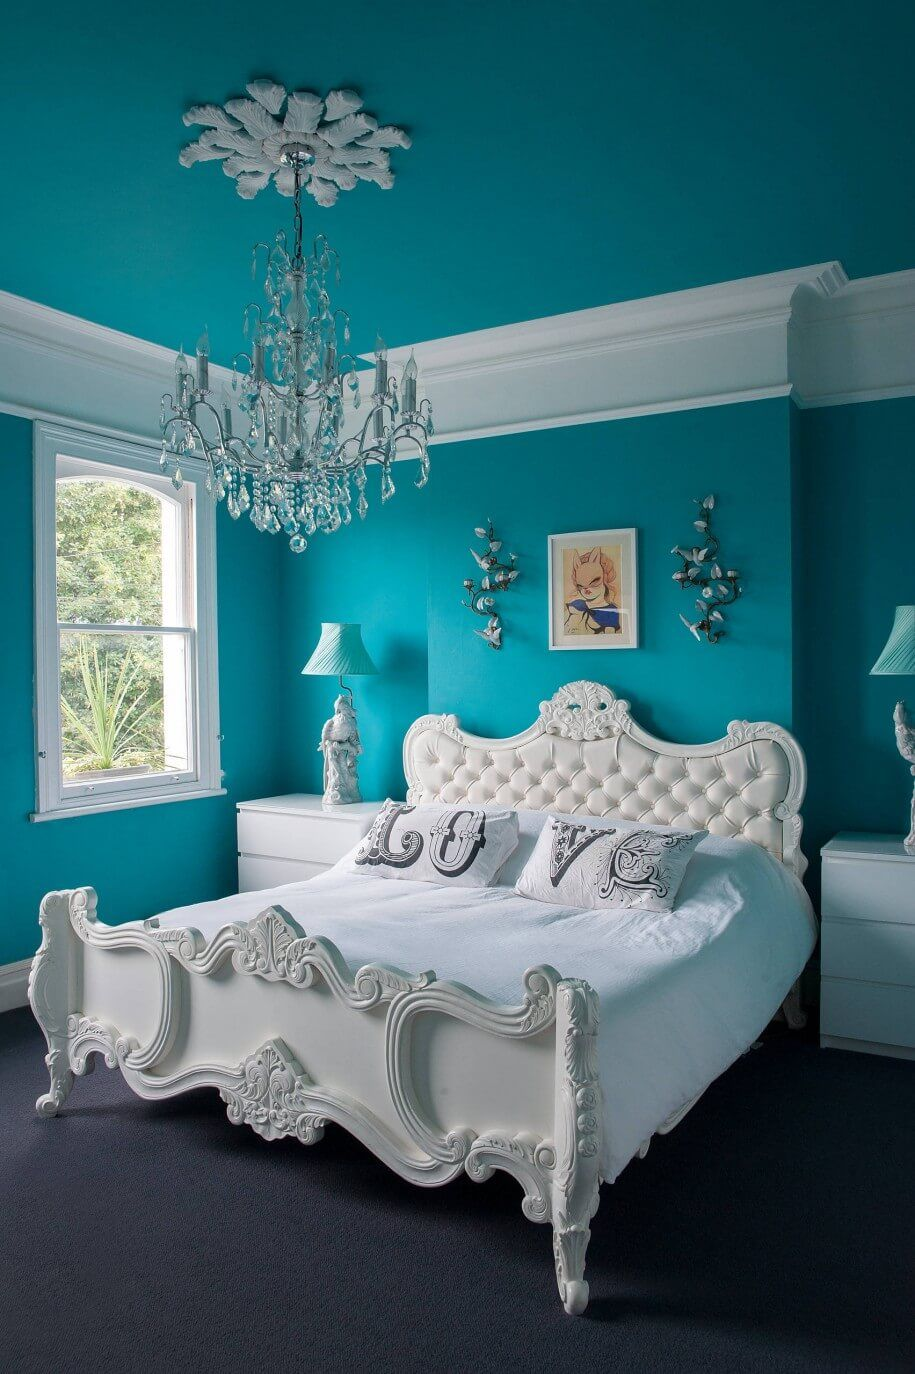 9+ Stunning Turquoise Room Ideas to Freshen Up Your Home